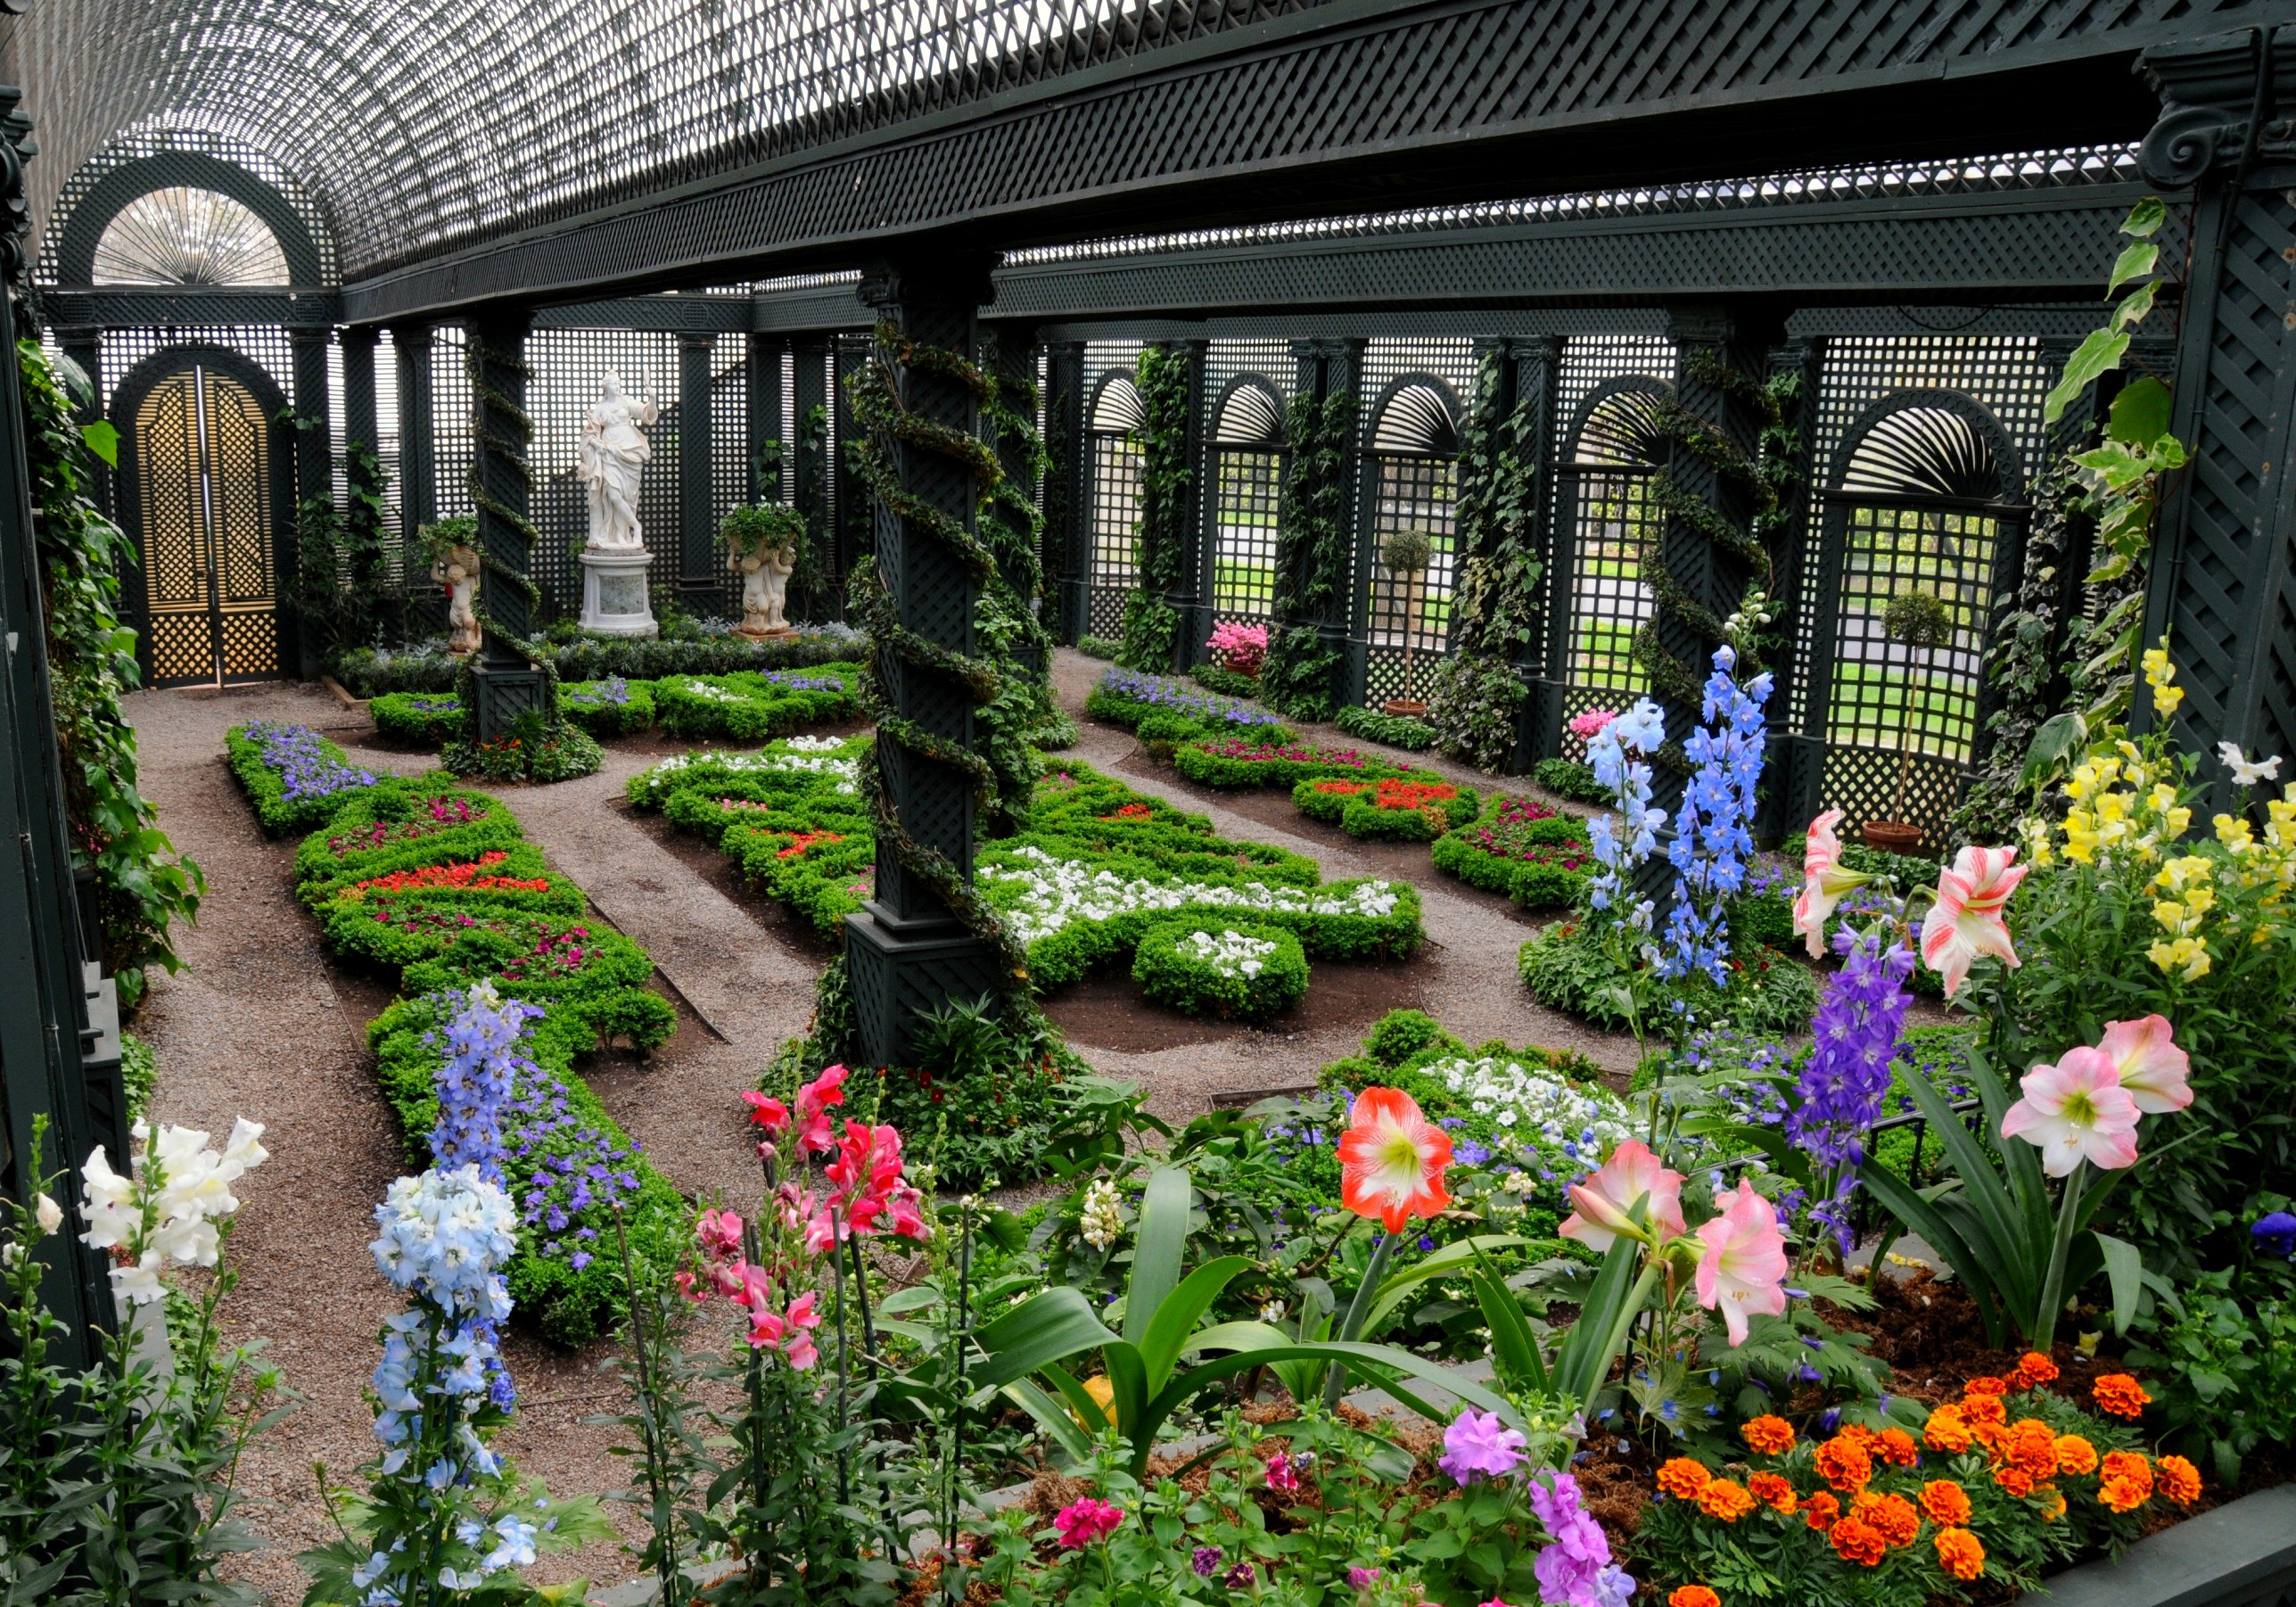 File:French Garden at Duke Gardens.jpg - Wikimedia Commons